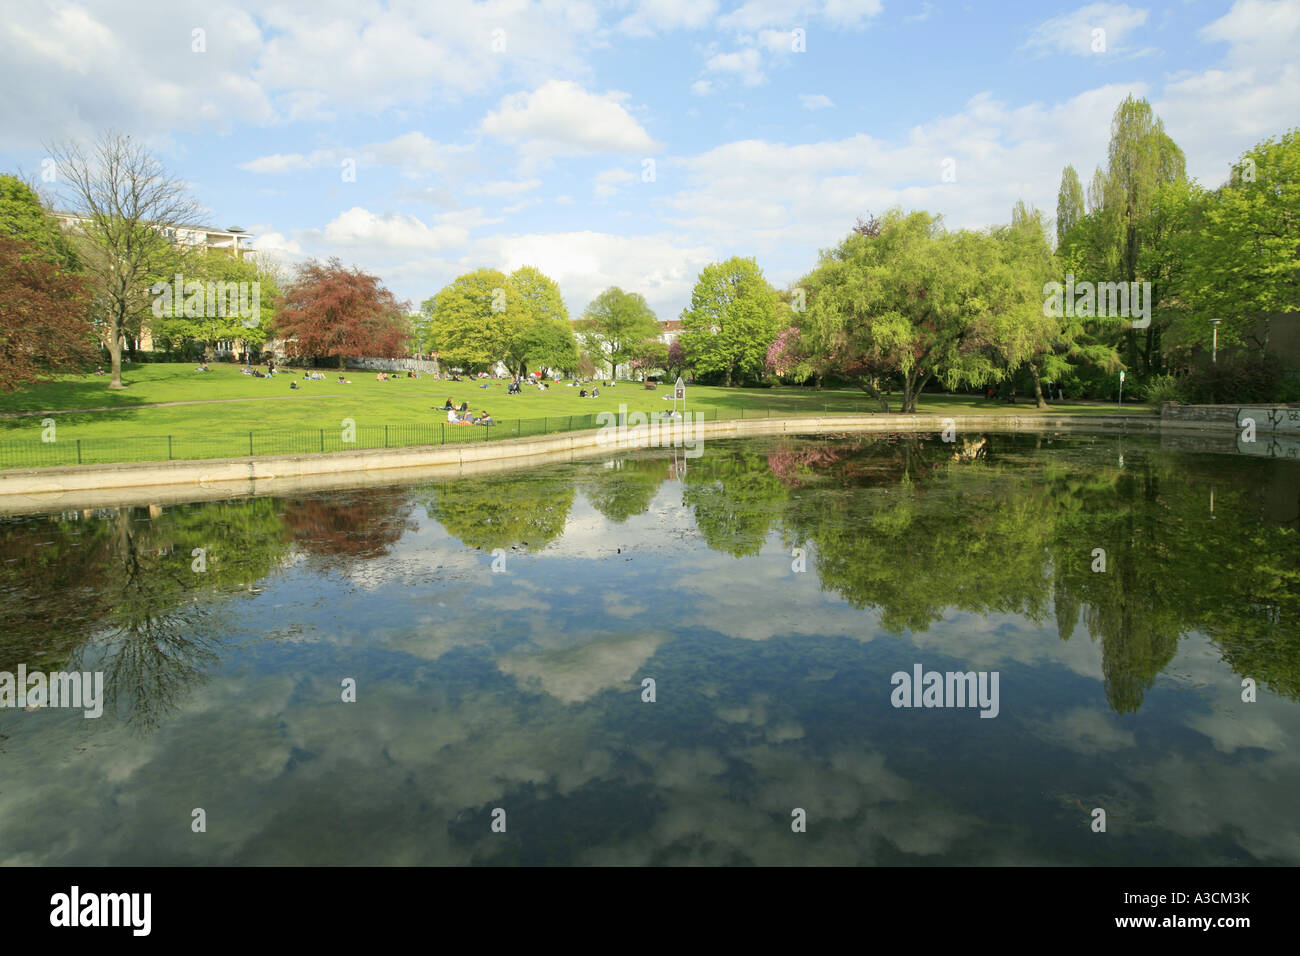 Volkspark at the Weinberg, Germany, Berlin - Stock Image